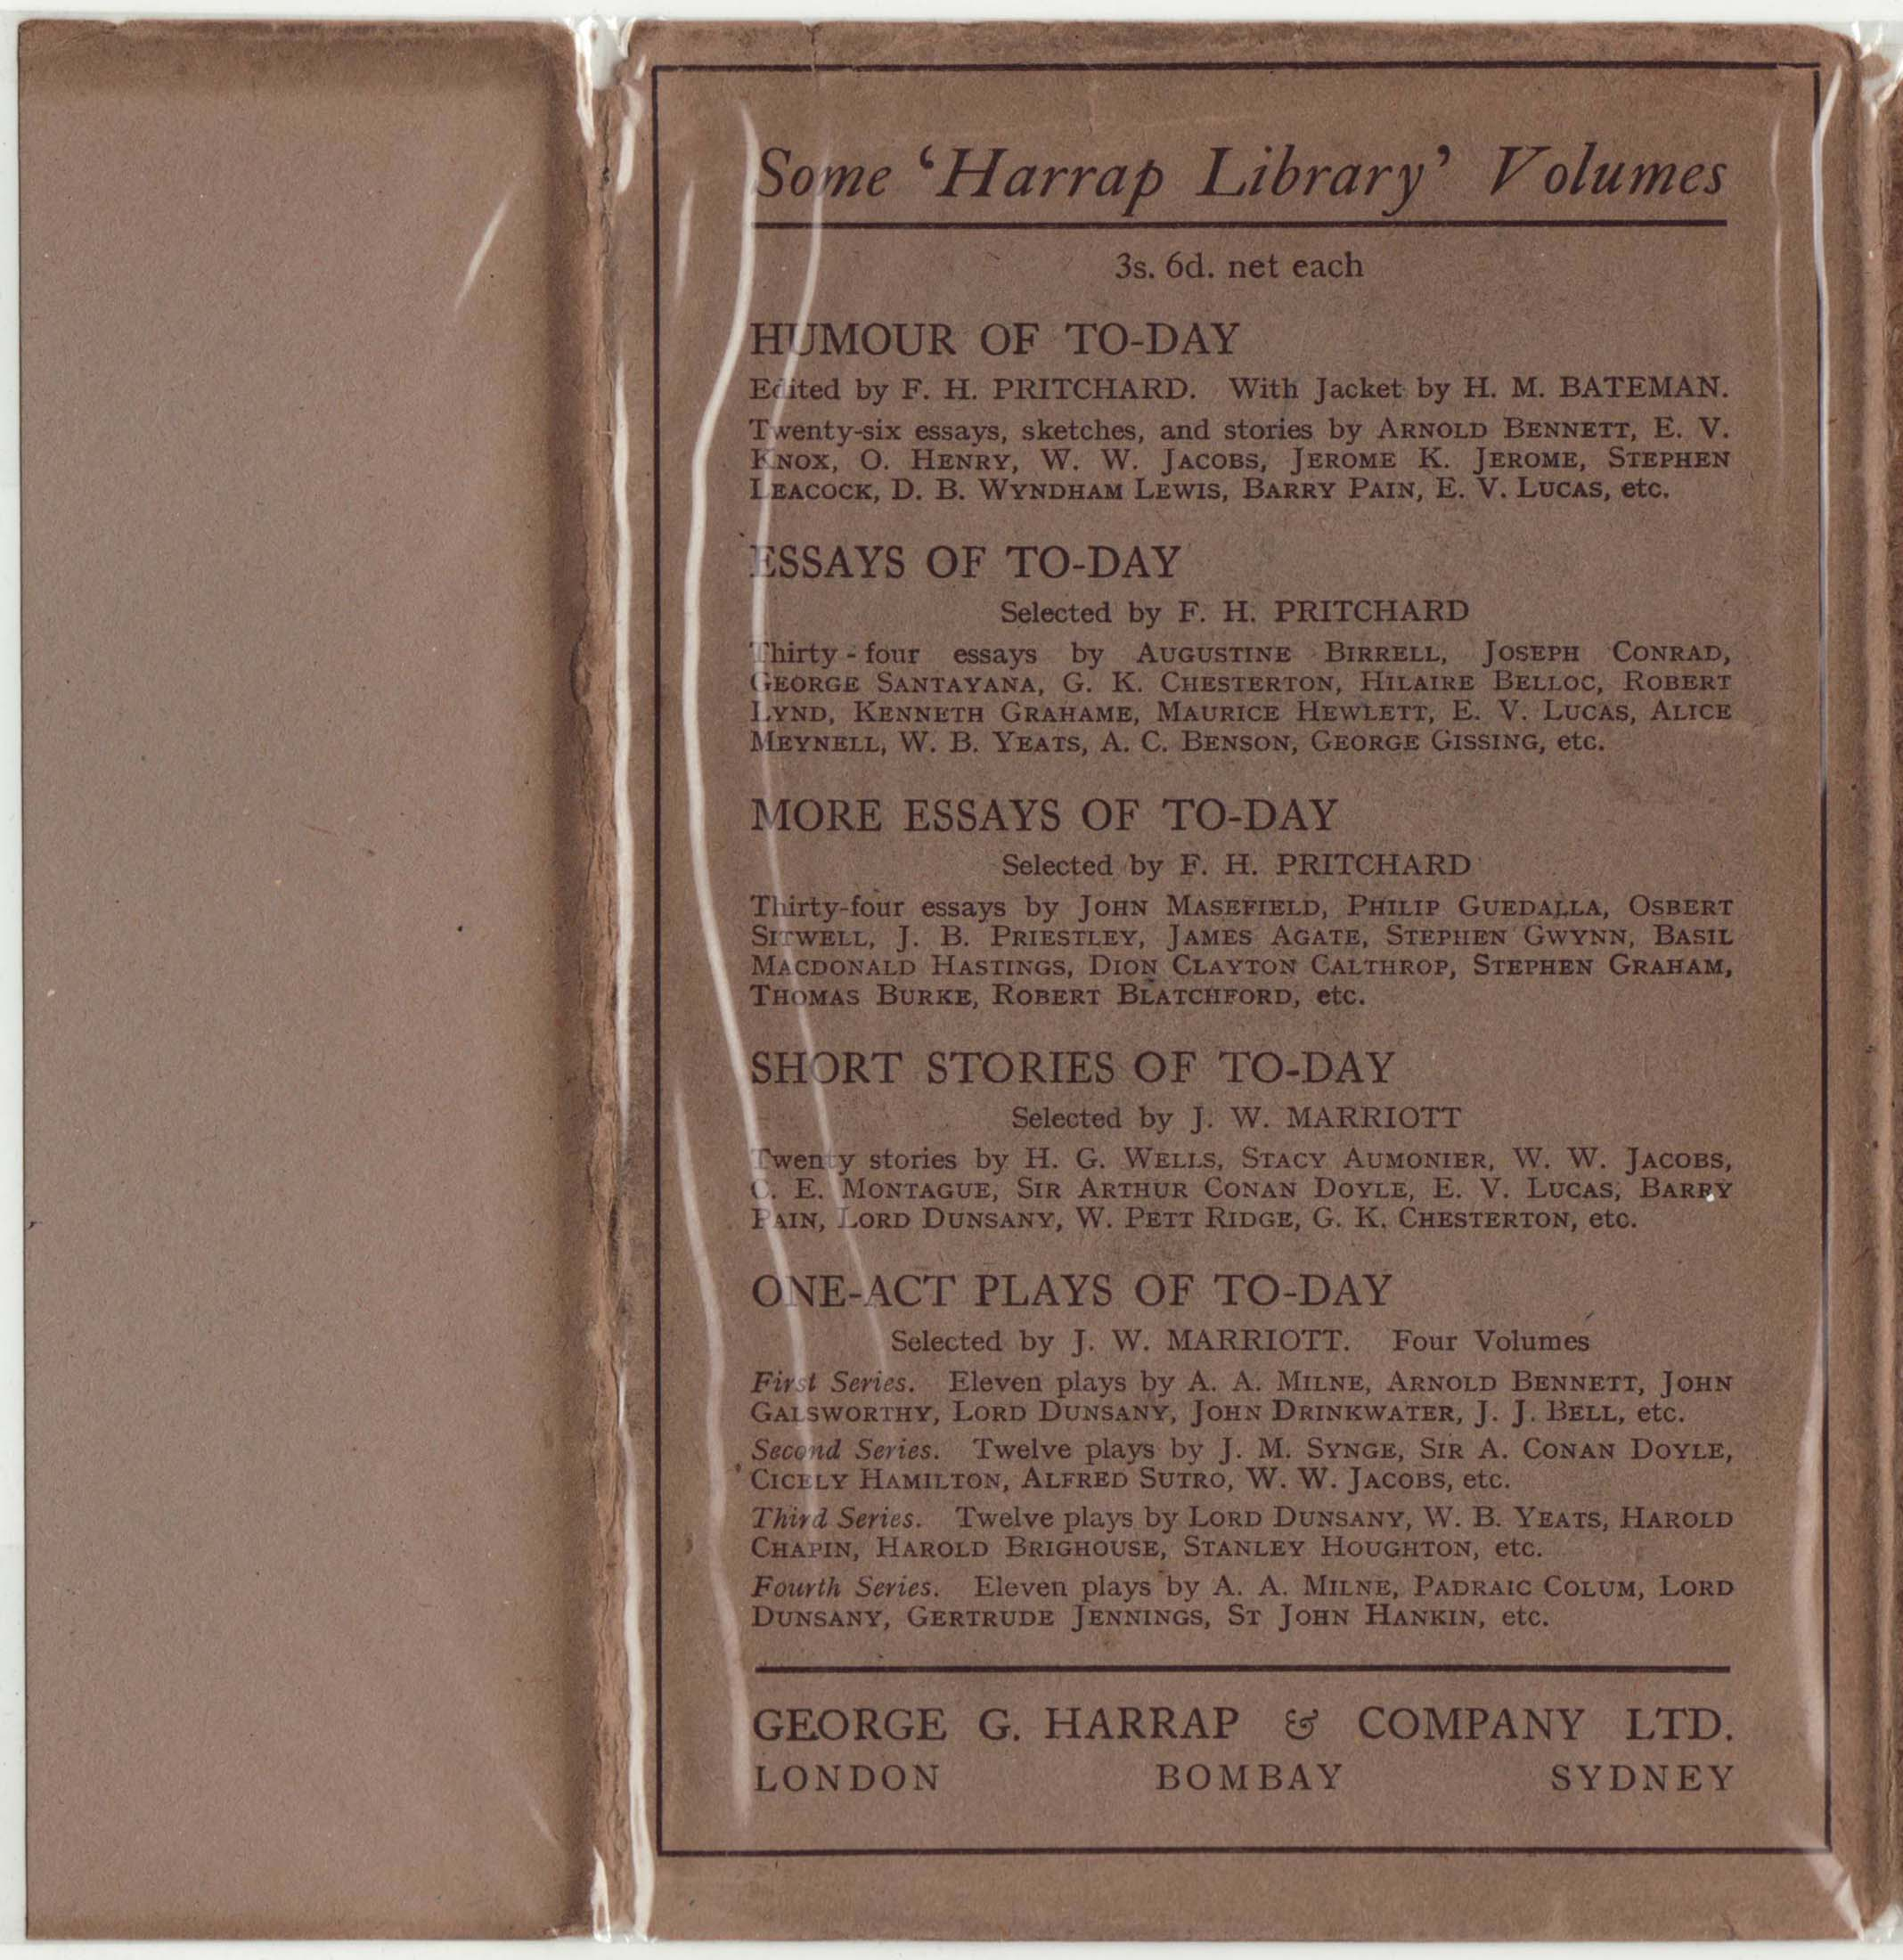 harrap library a series of series harraplib 1925 djback